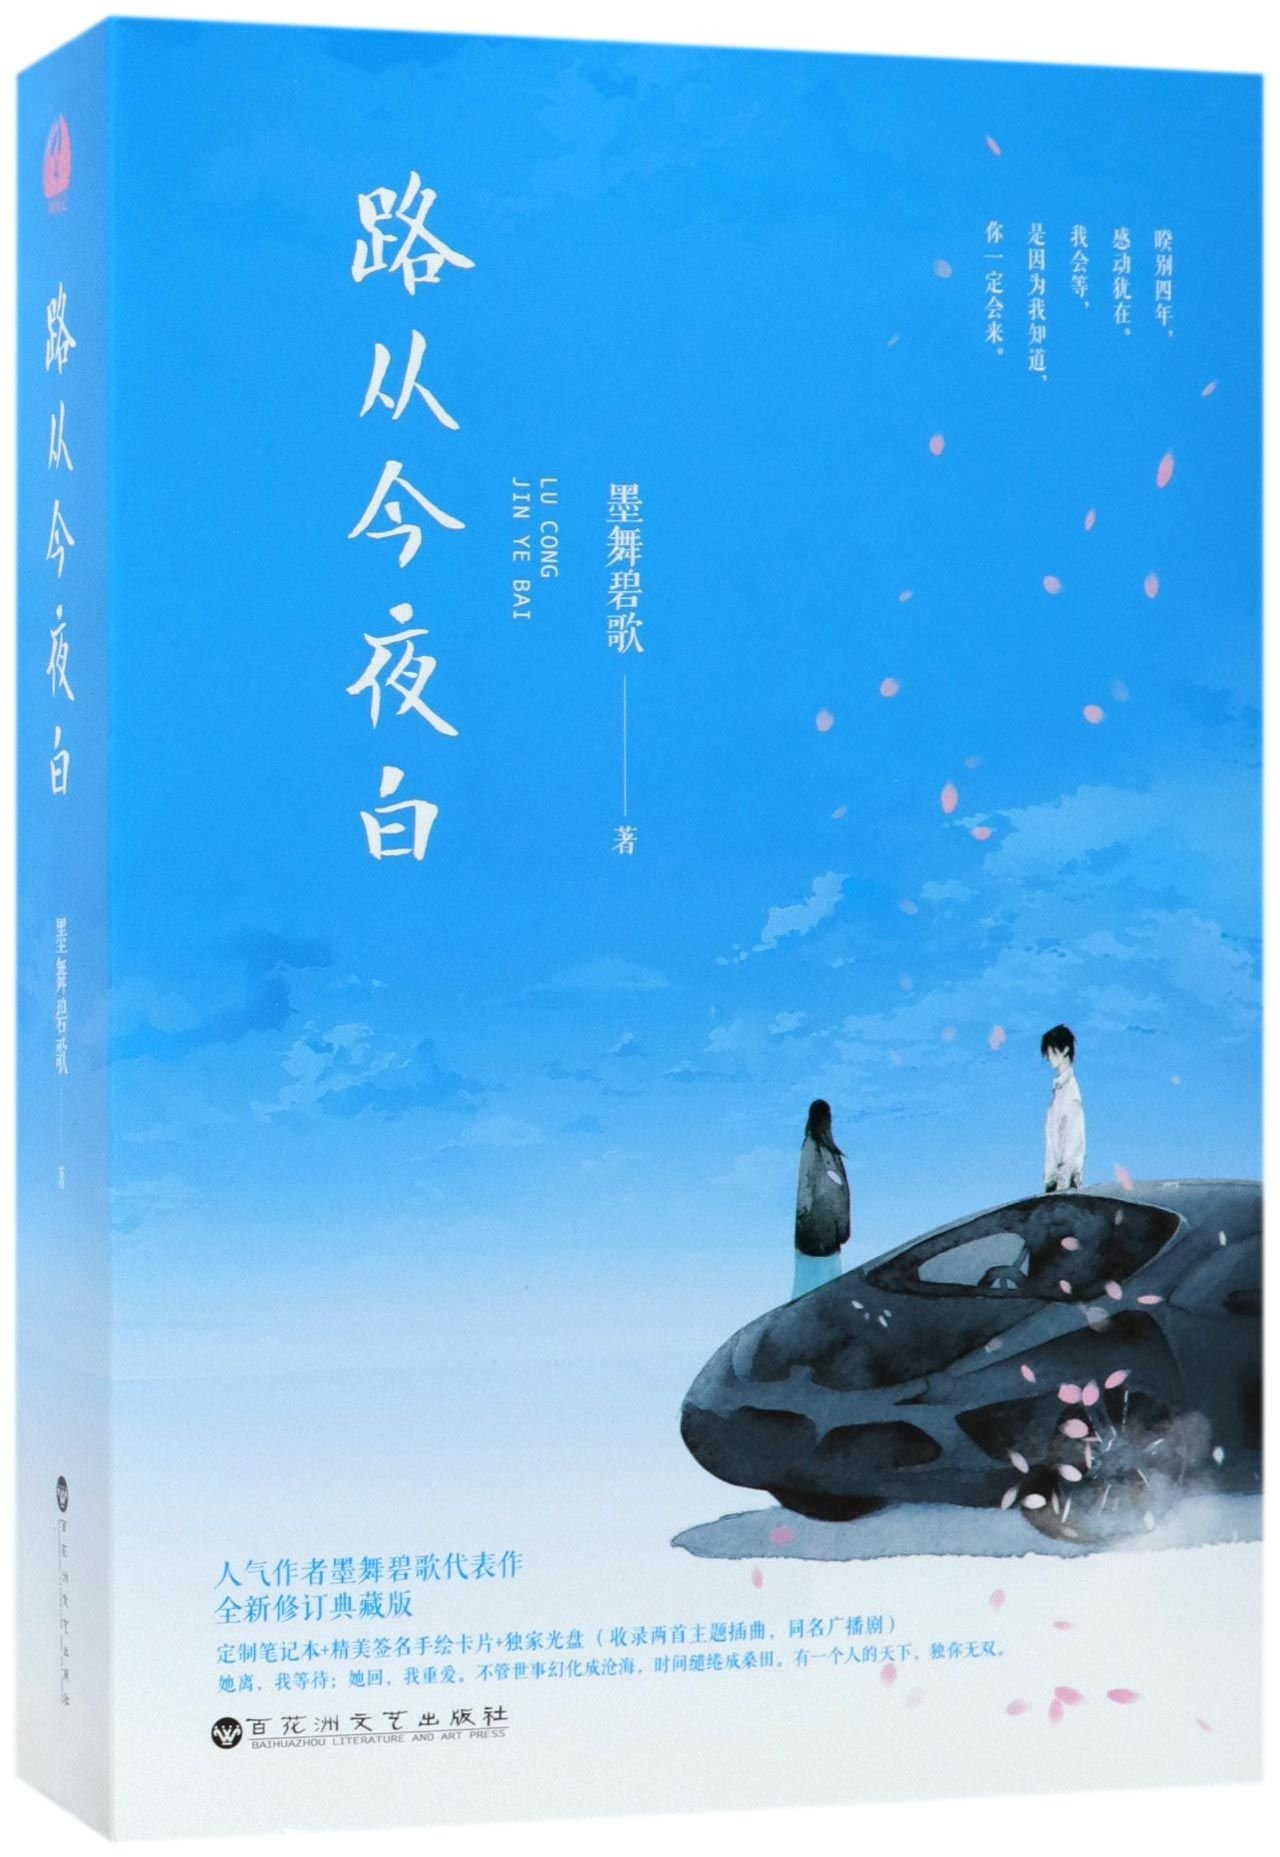 Read Online The Endless Love (With CD, I & II) (Chinese Edition) PDF